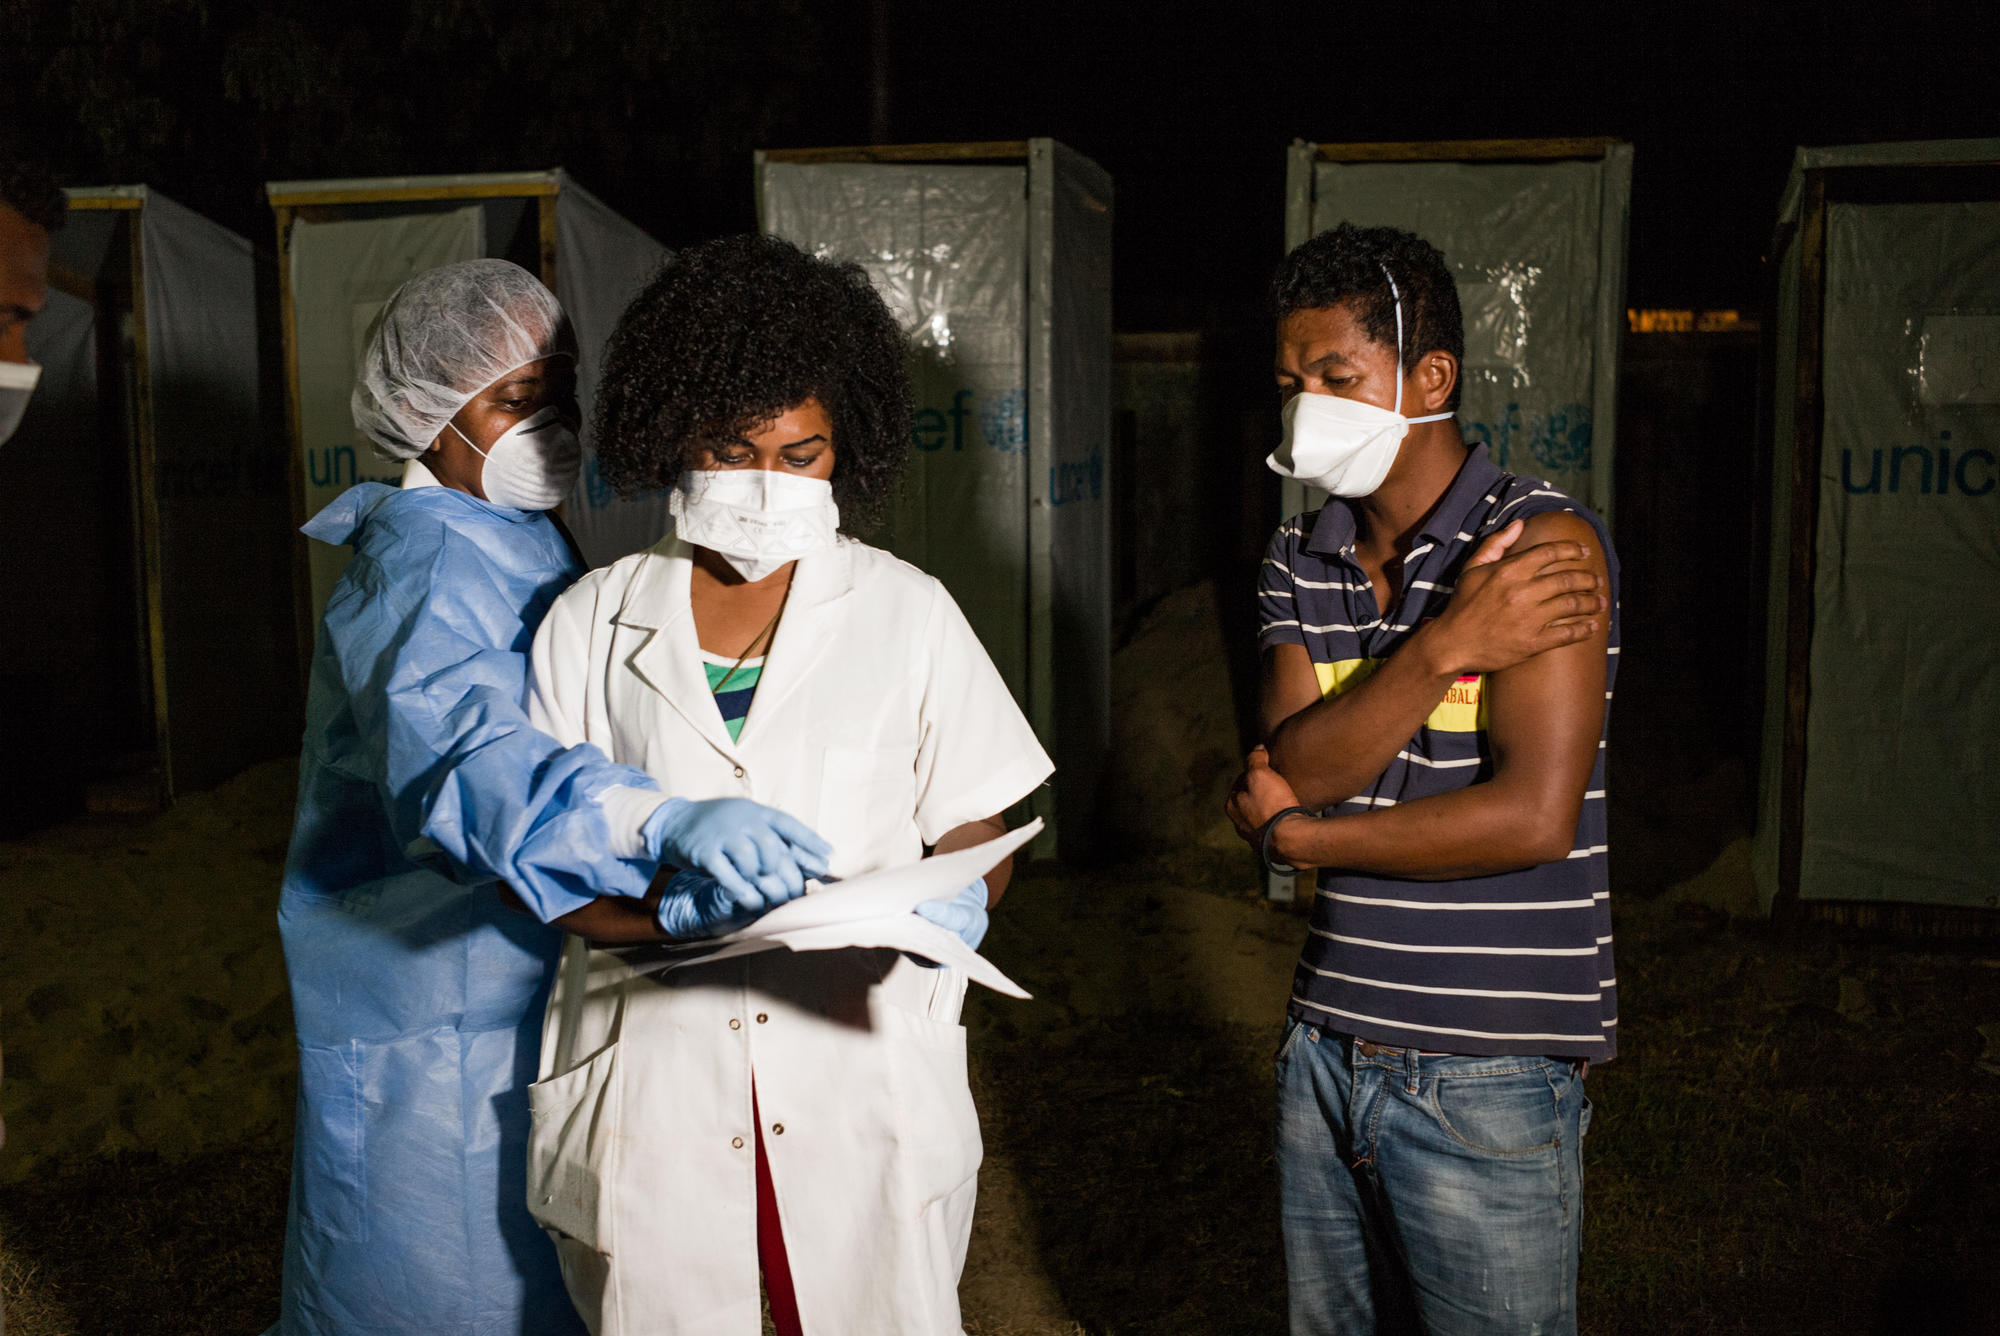 Andrinjaka Rafamantanantsoa, 28, was treated in MSF's Plague Triage and Treatment Center in Toamasina, Madagascar in 2017.